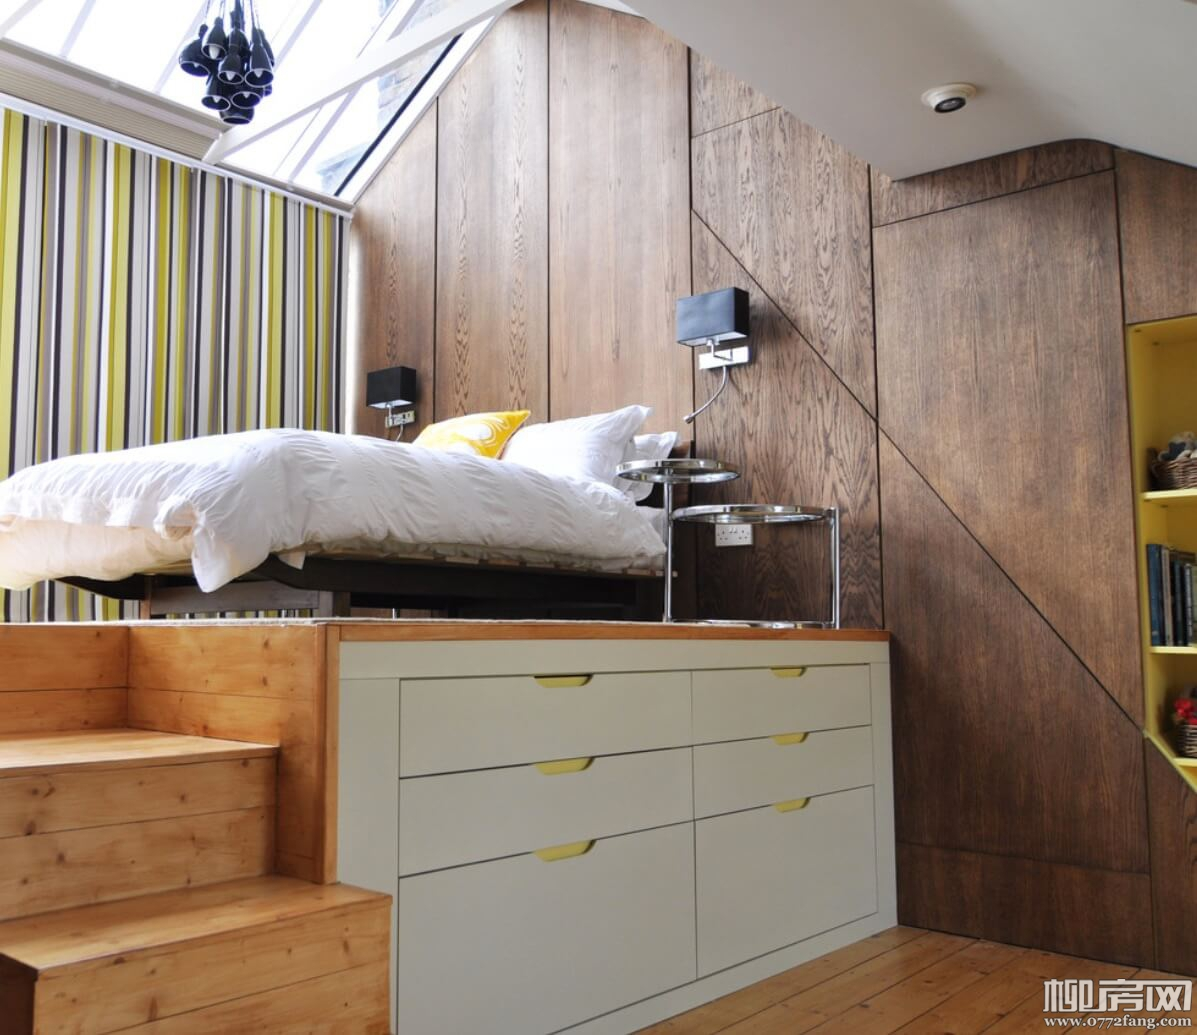 Small-Space-Beds-Loft-Half.jpg